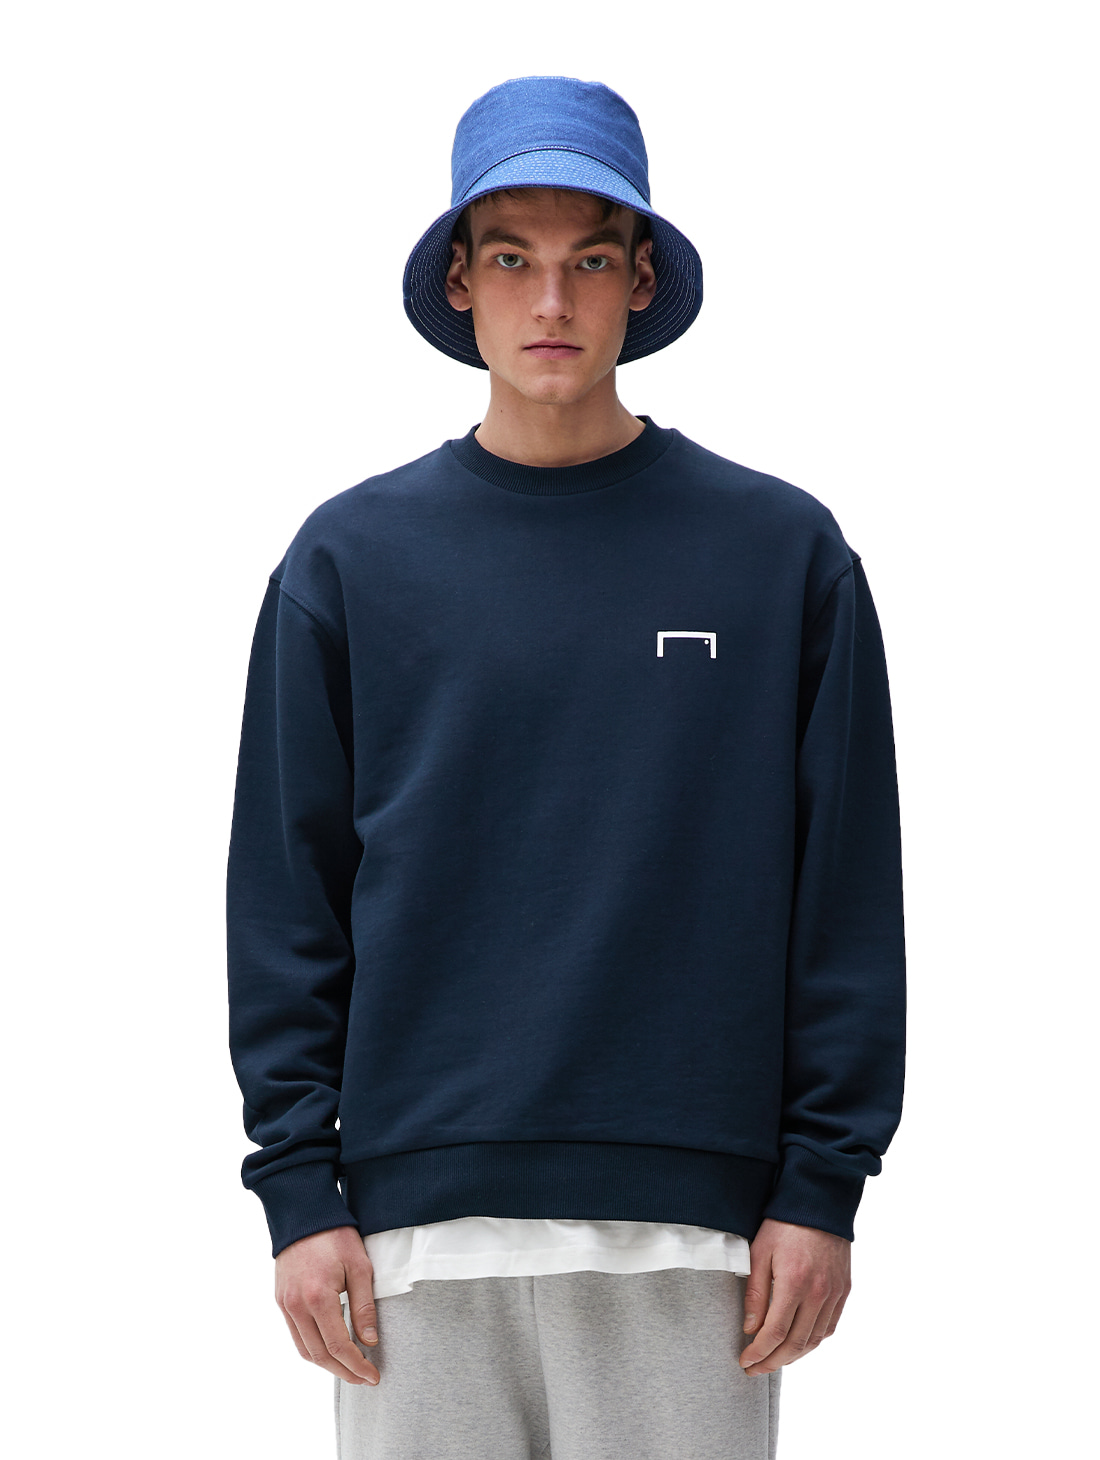 GOALSTUDIO PULSE GRAPHIC SWEATSHIRT - NAVY